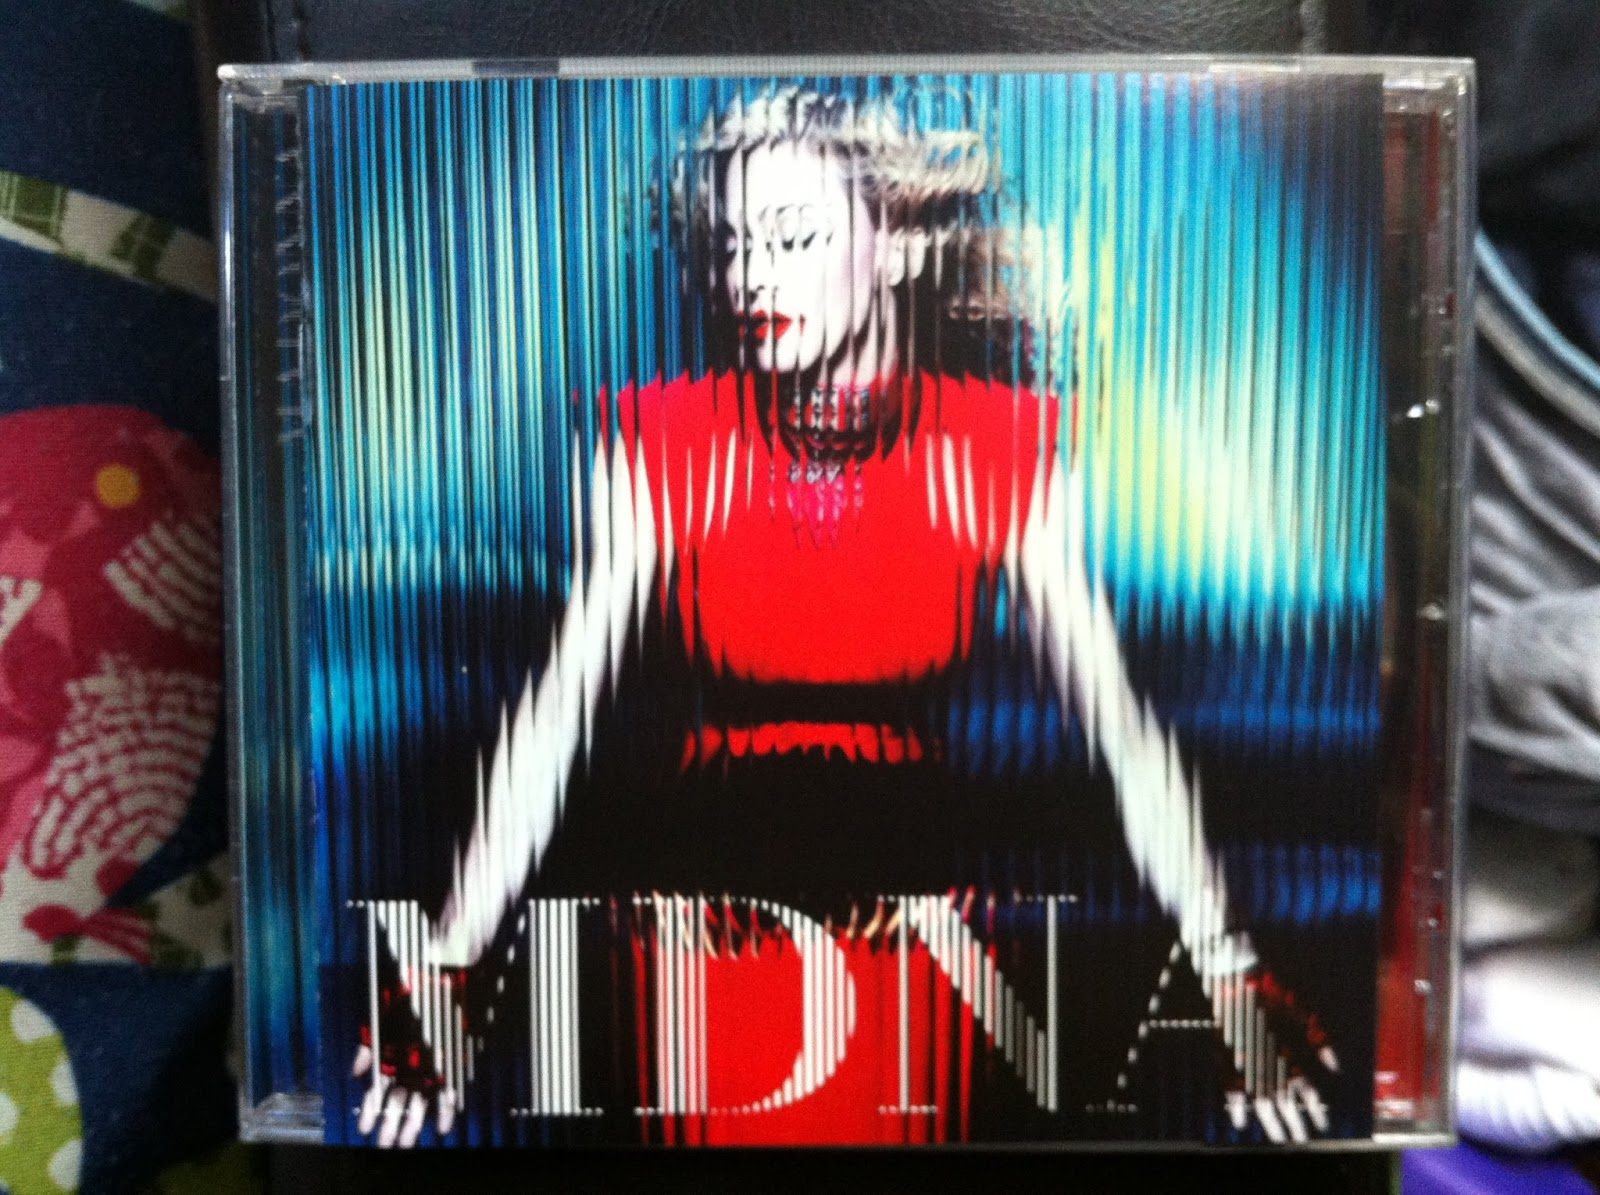 Bad trip the madonna factor lets start with the cd case in the world of cia mind control there is a program called mk ultra or monarch programming voltagebd Image collections